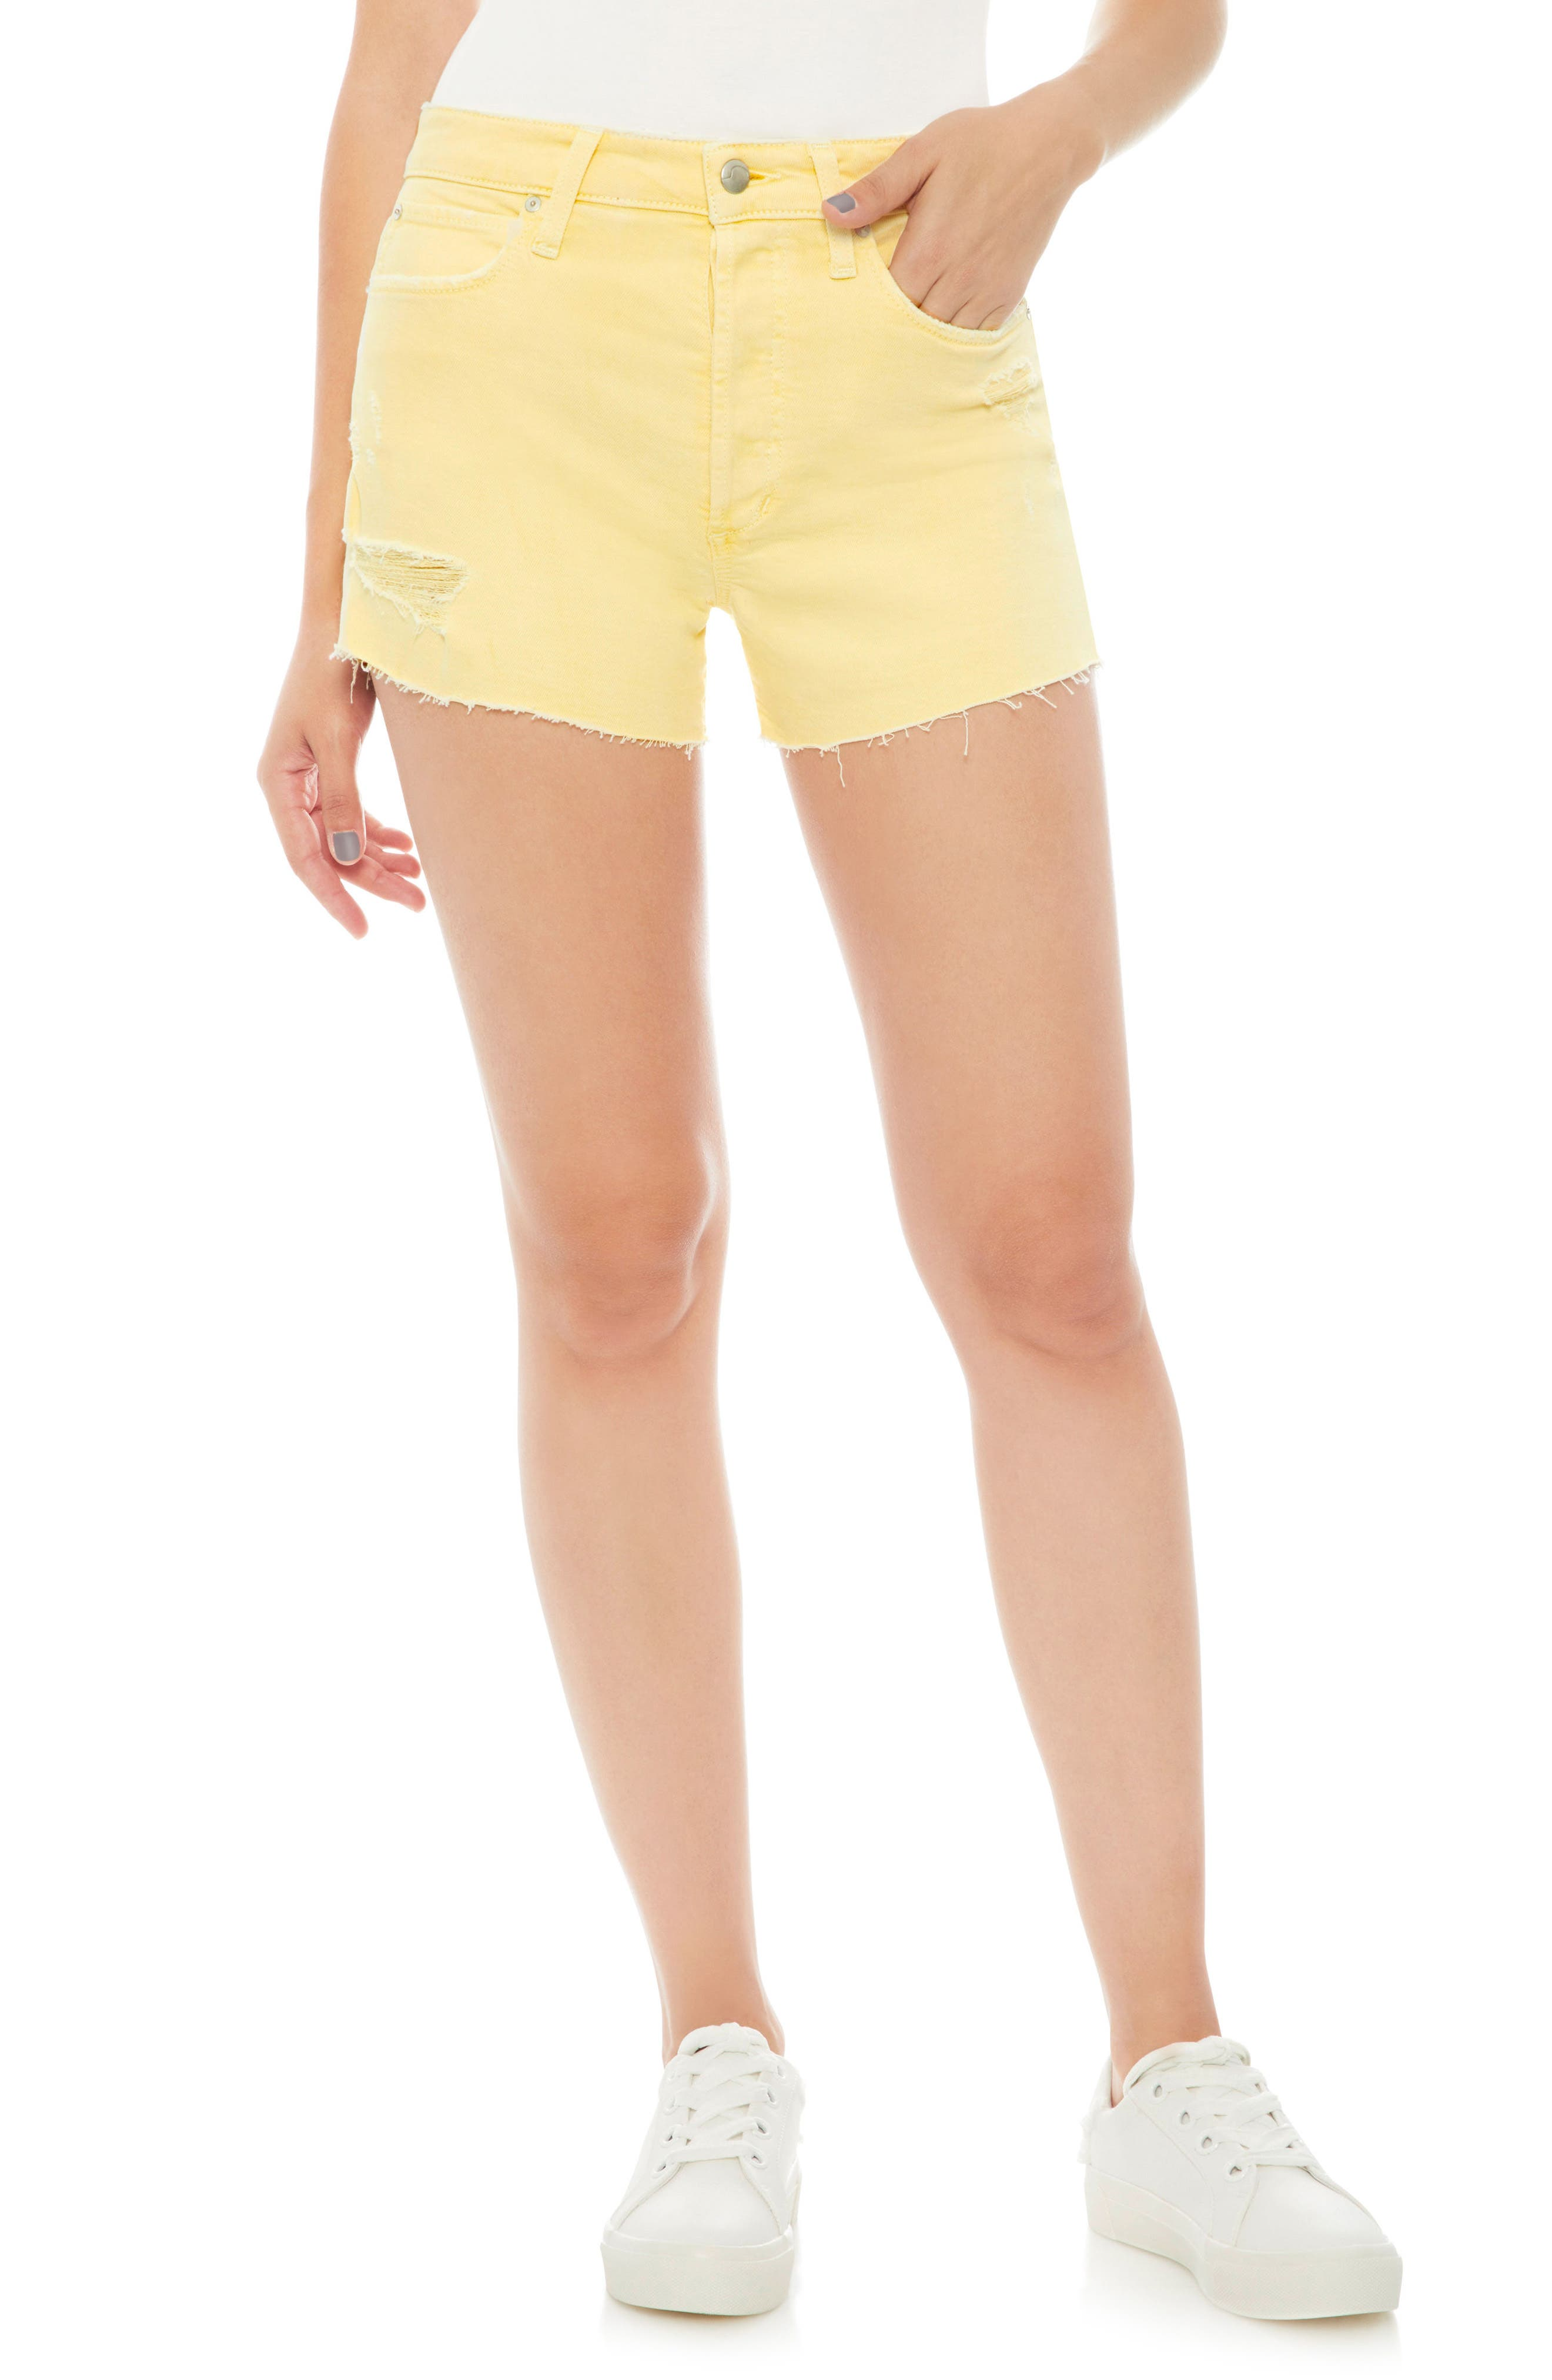 Smith High Waist Shorts,                         Main,                         color, Impala